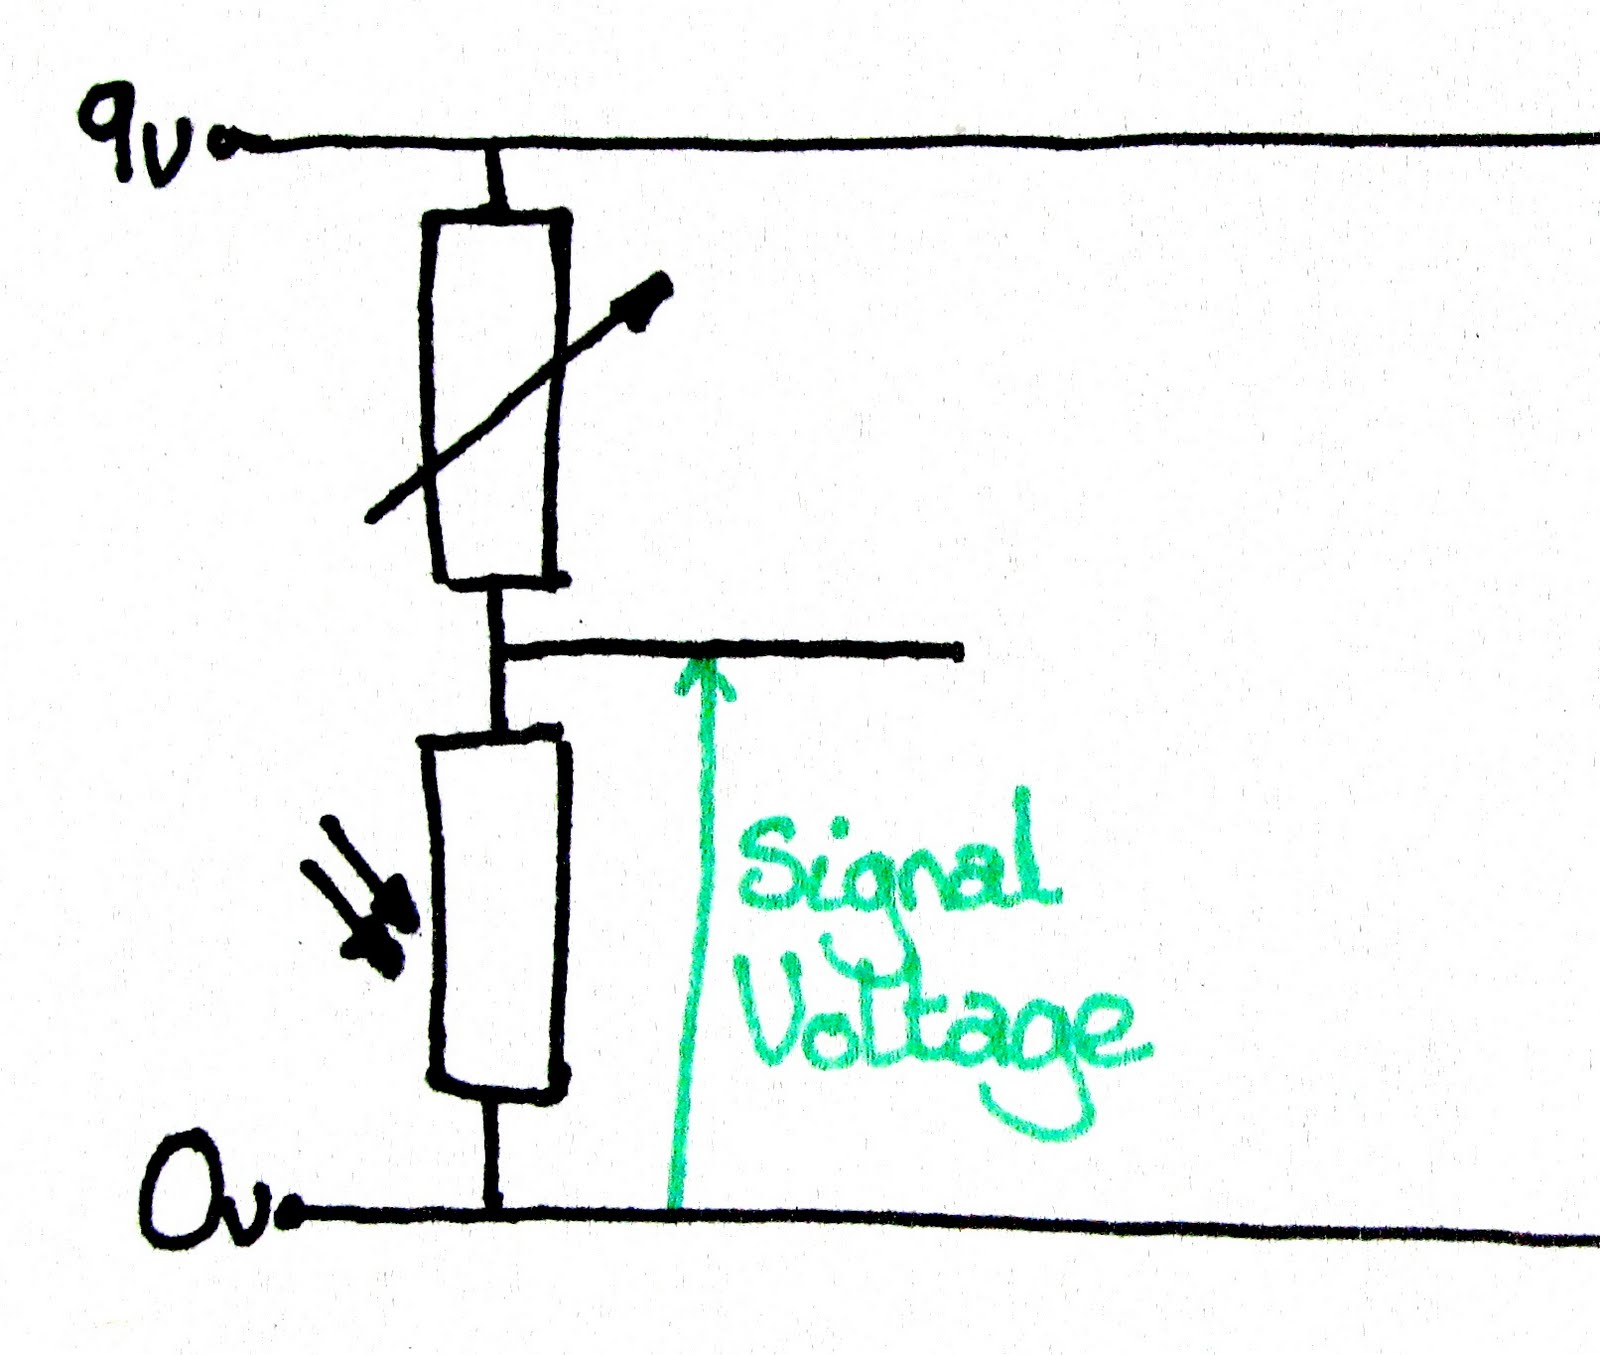 Gwc 4cr Technological Studies 2011 12 June Voltage Divider Diagram Wednesday 8